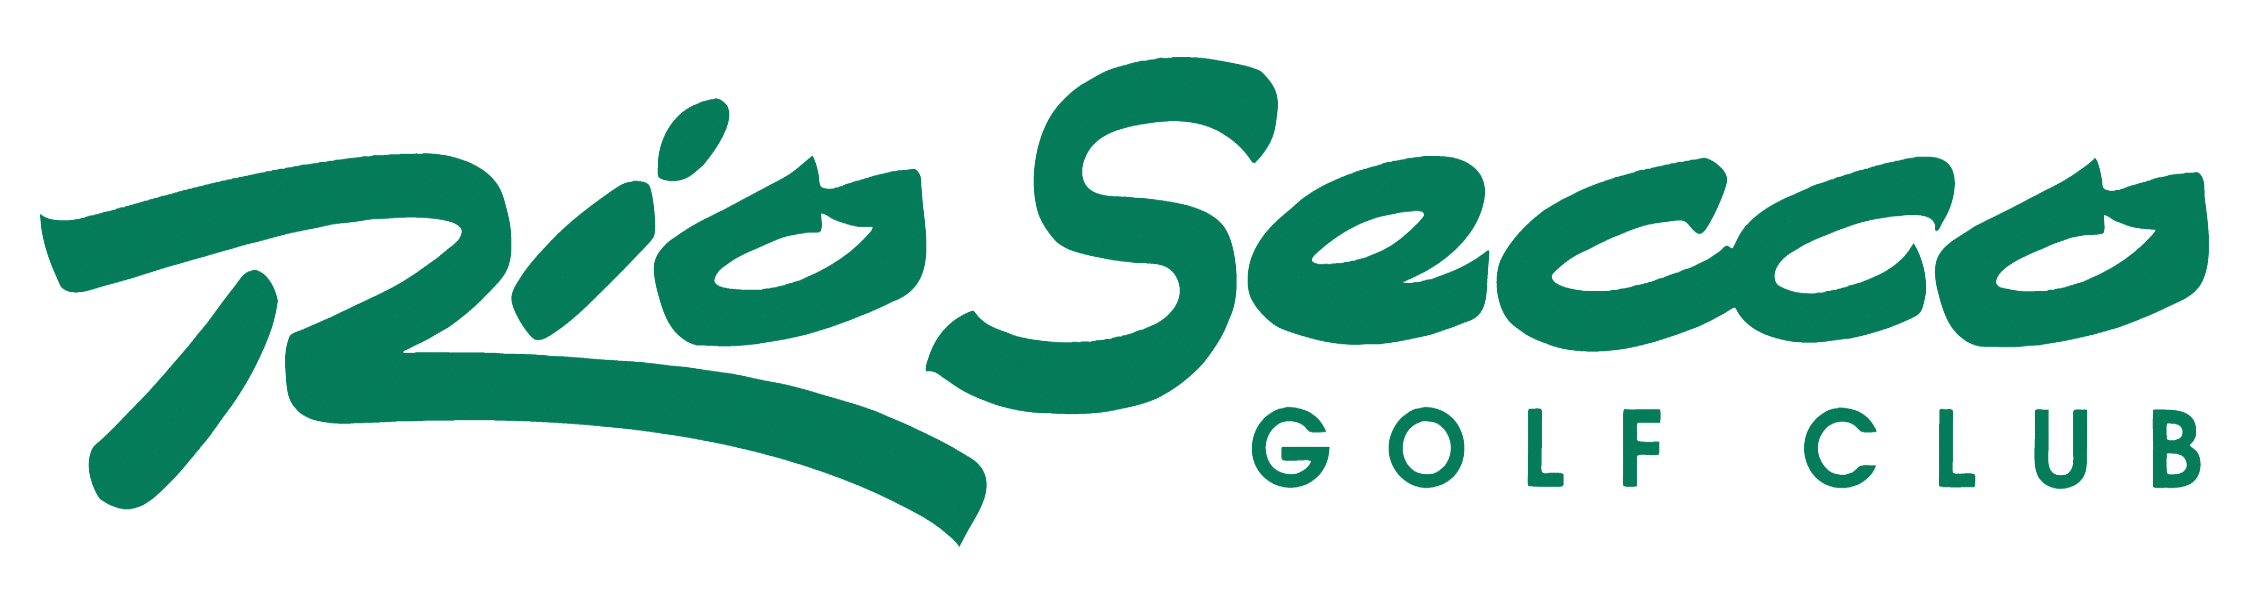 Rio Secco Golf Club's Logo